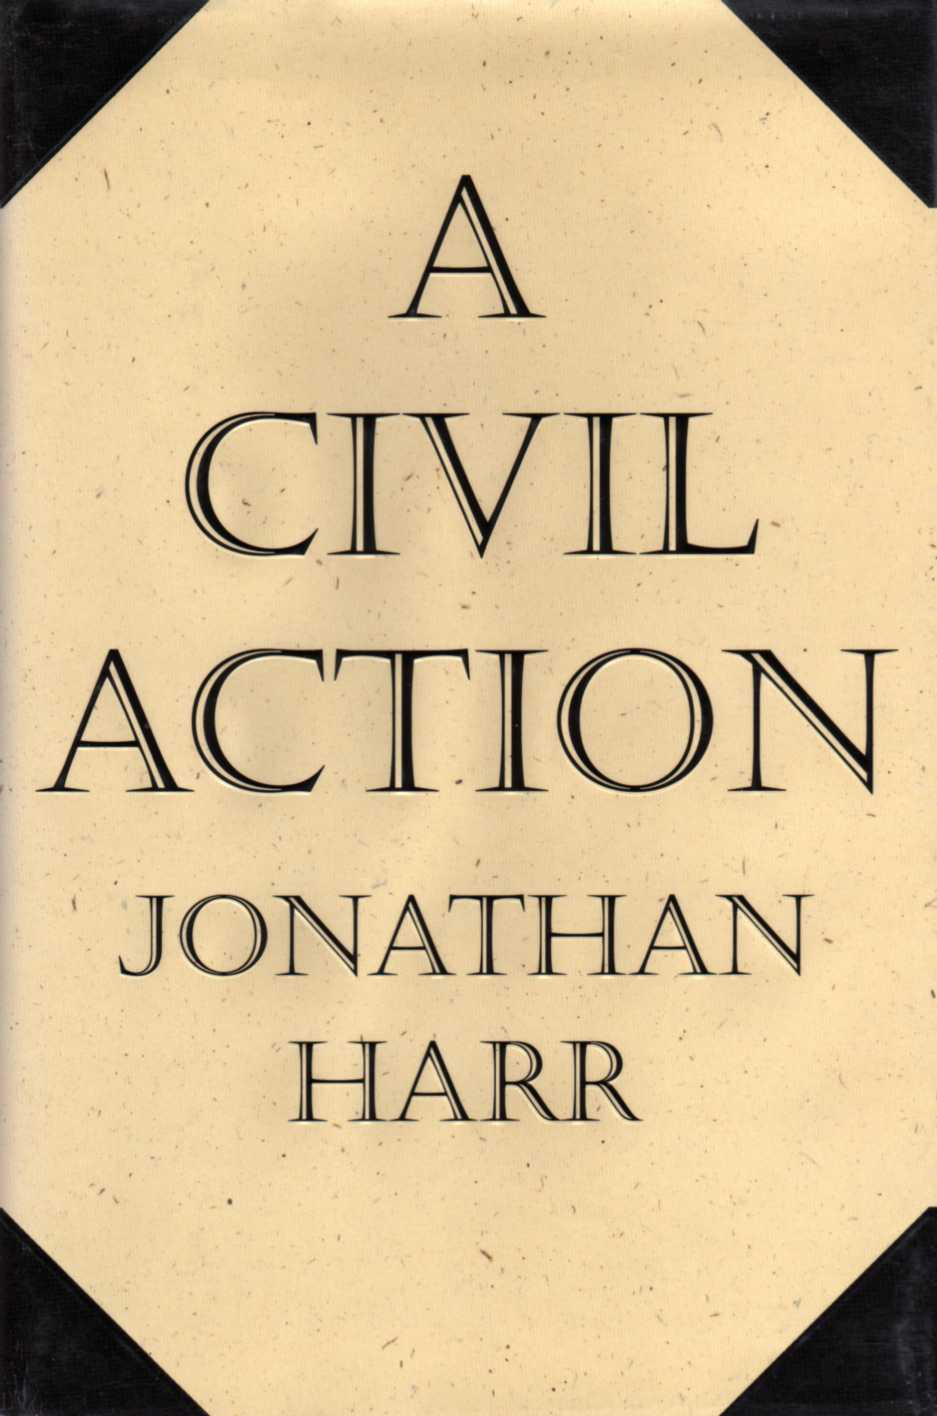 A Civil Action by Jonathan Harr book cover